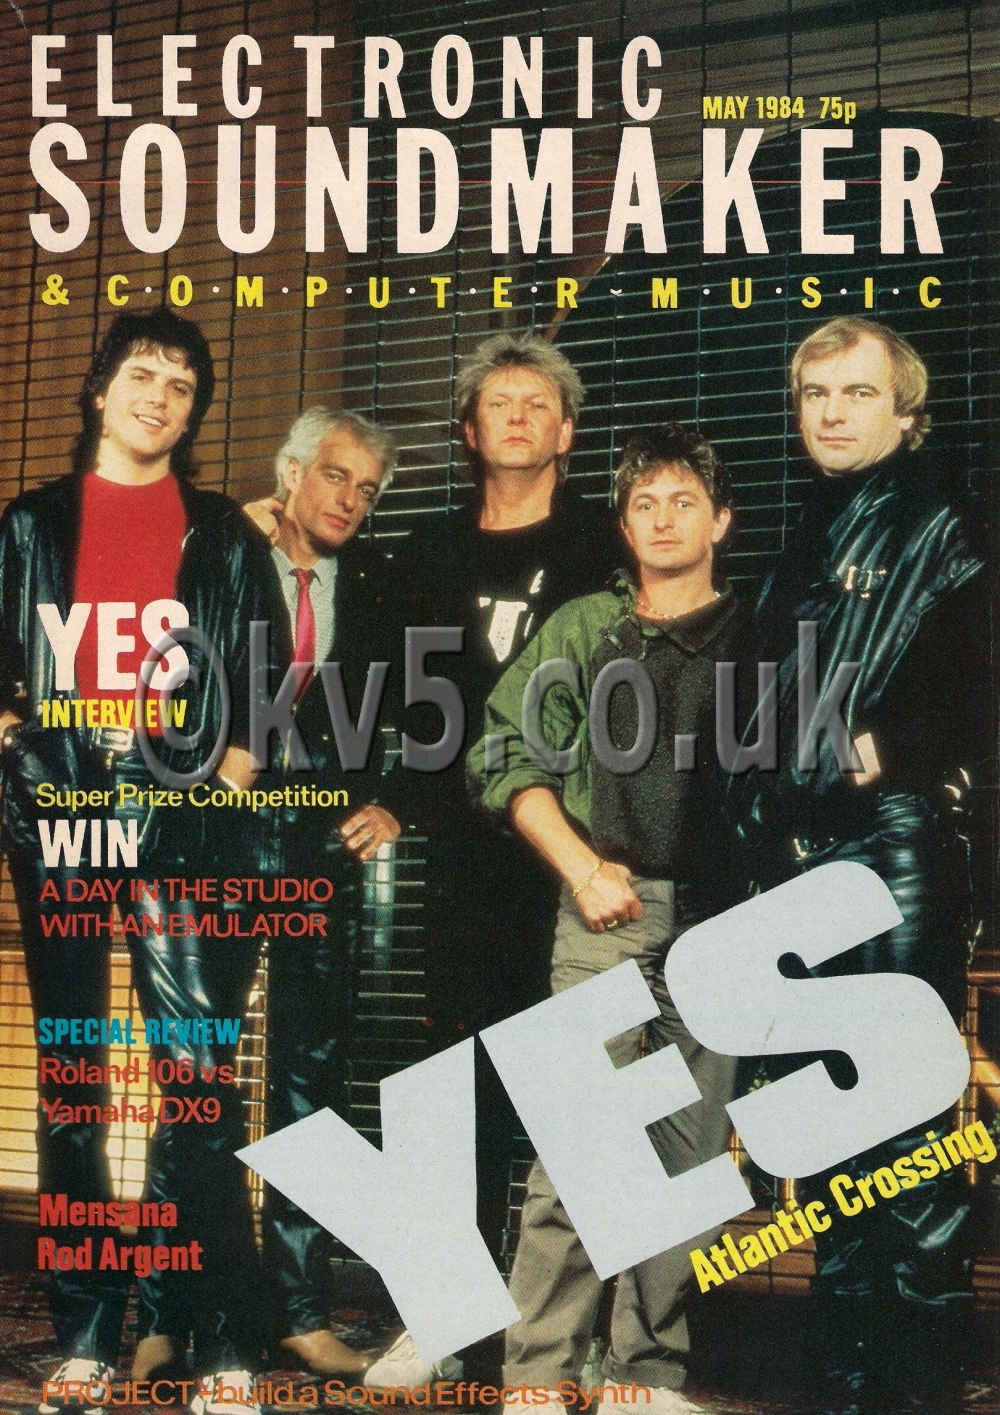 Electronic Soundmaker May 1984